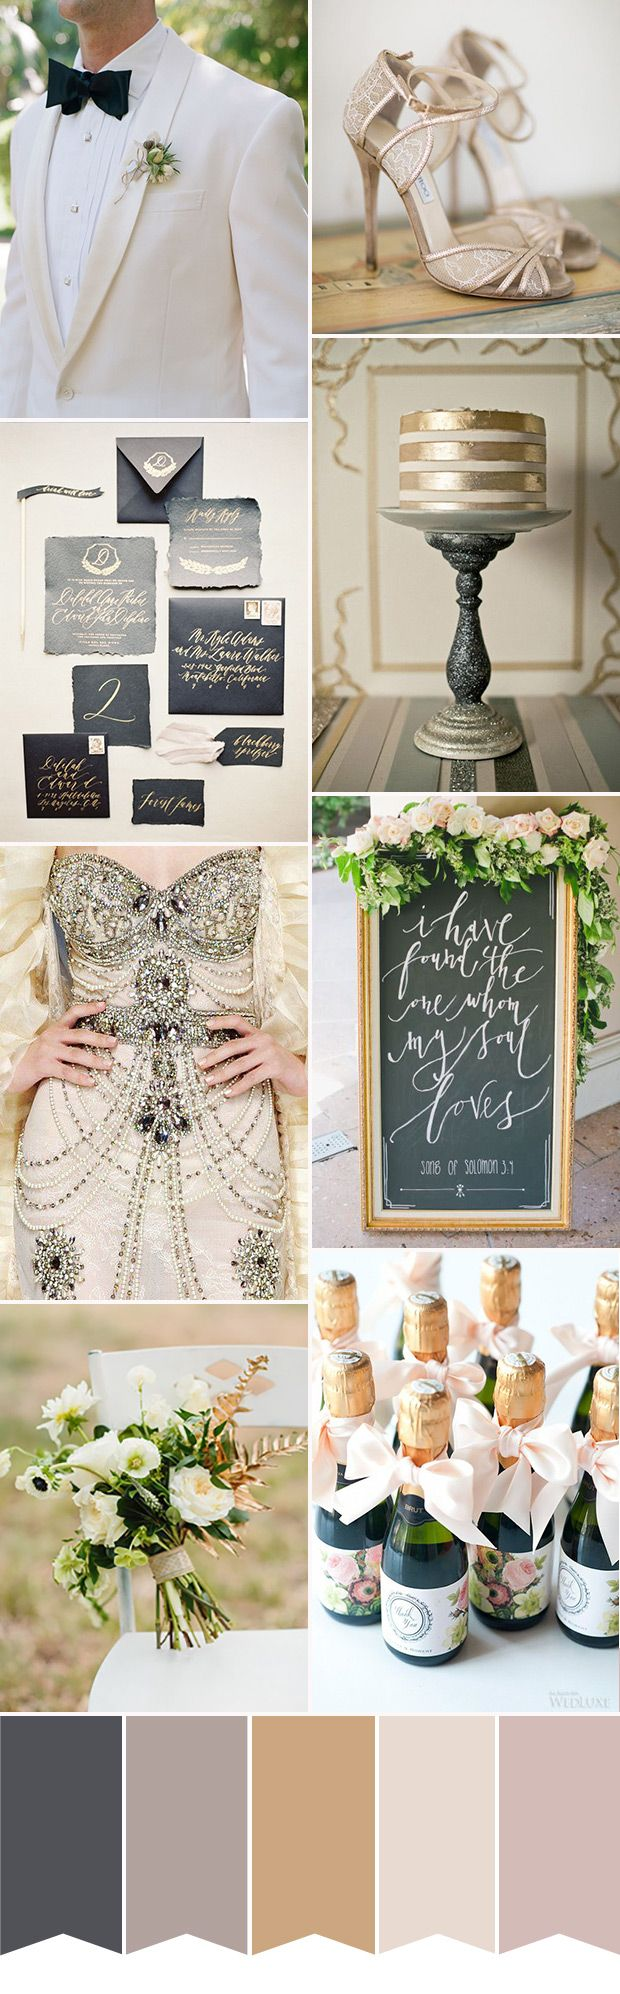 For those who love a bit of luxe, we create the epitome of a glamorous wedding. Gold encrusted and luxurious, this wedding says modern, high-end glamour to us.